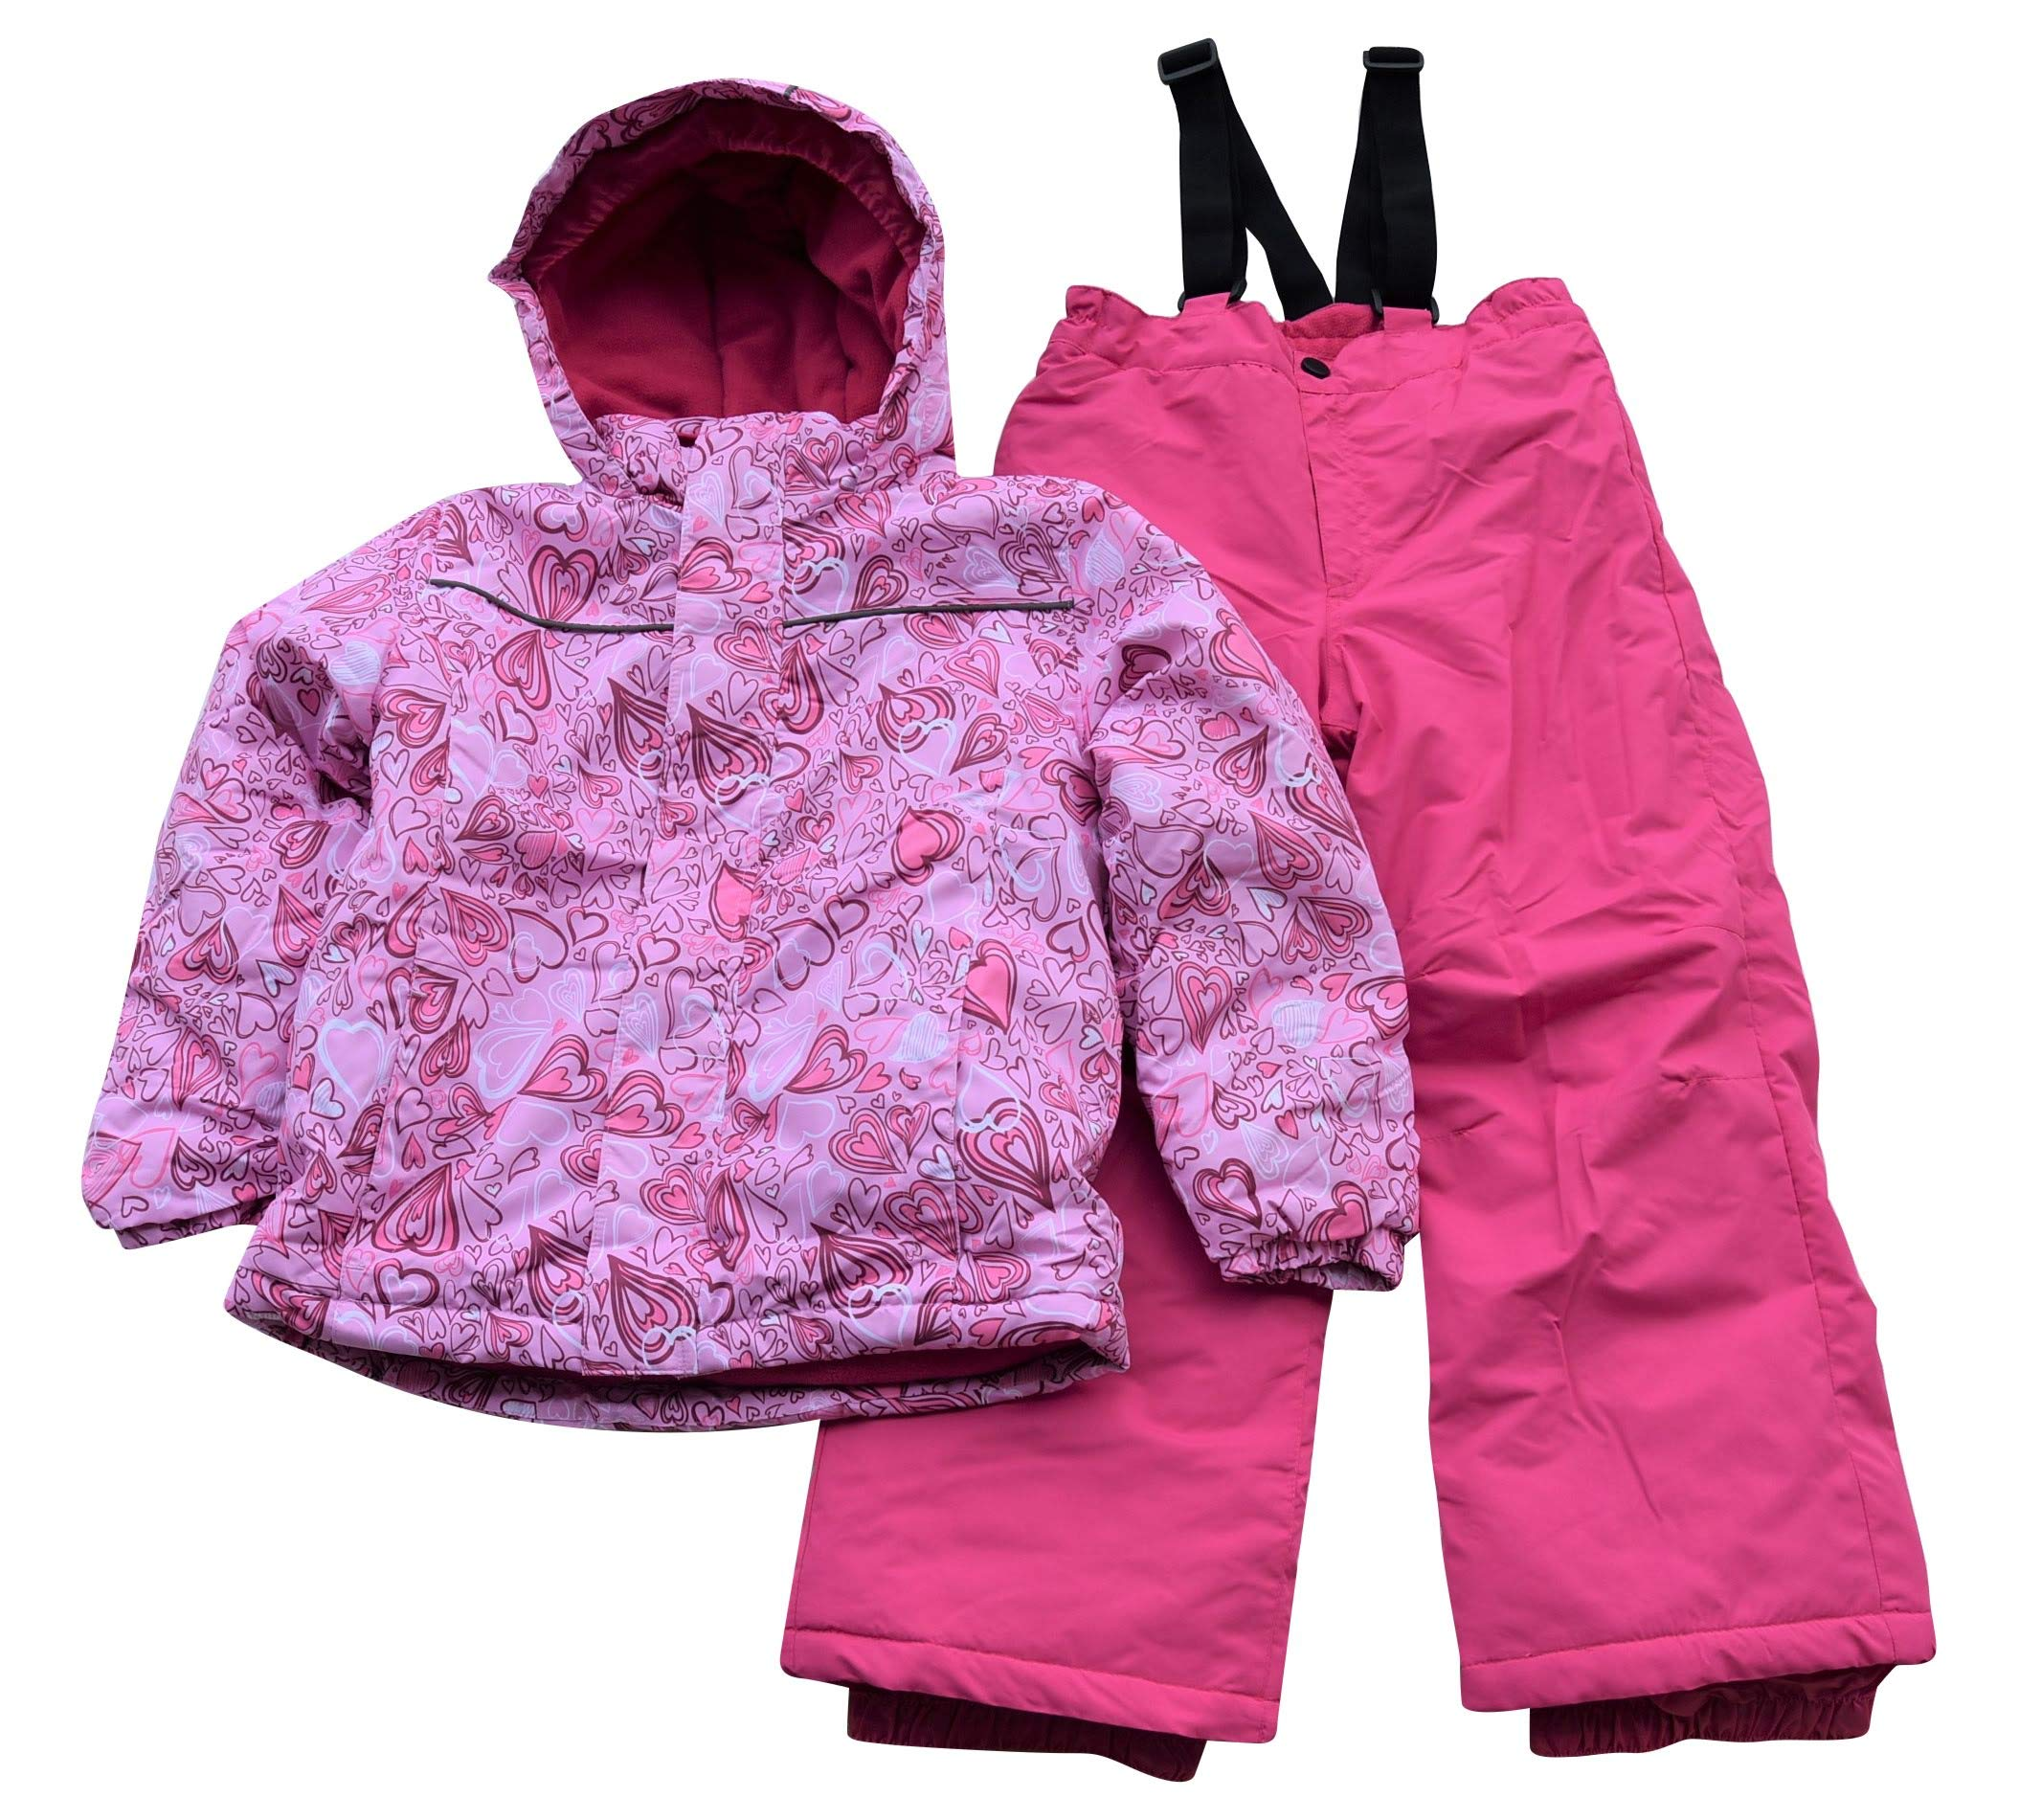 Snow Country Outerwear Little Girls Snowsuit Ski Jacket and Snow Pants Set (Medium (6), Pink Heart) by Snow Country Outerwear